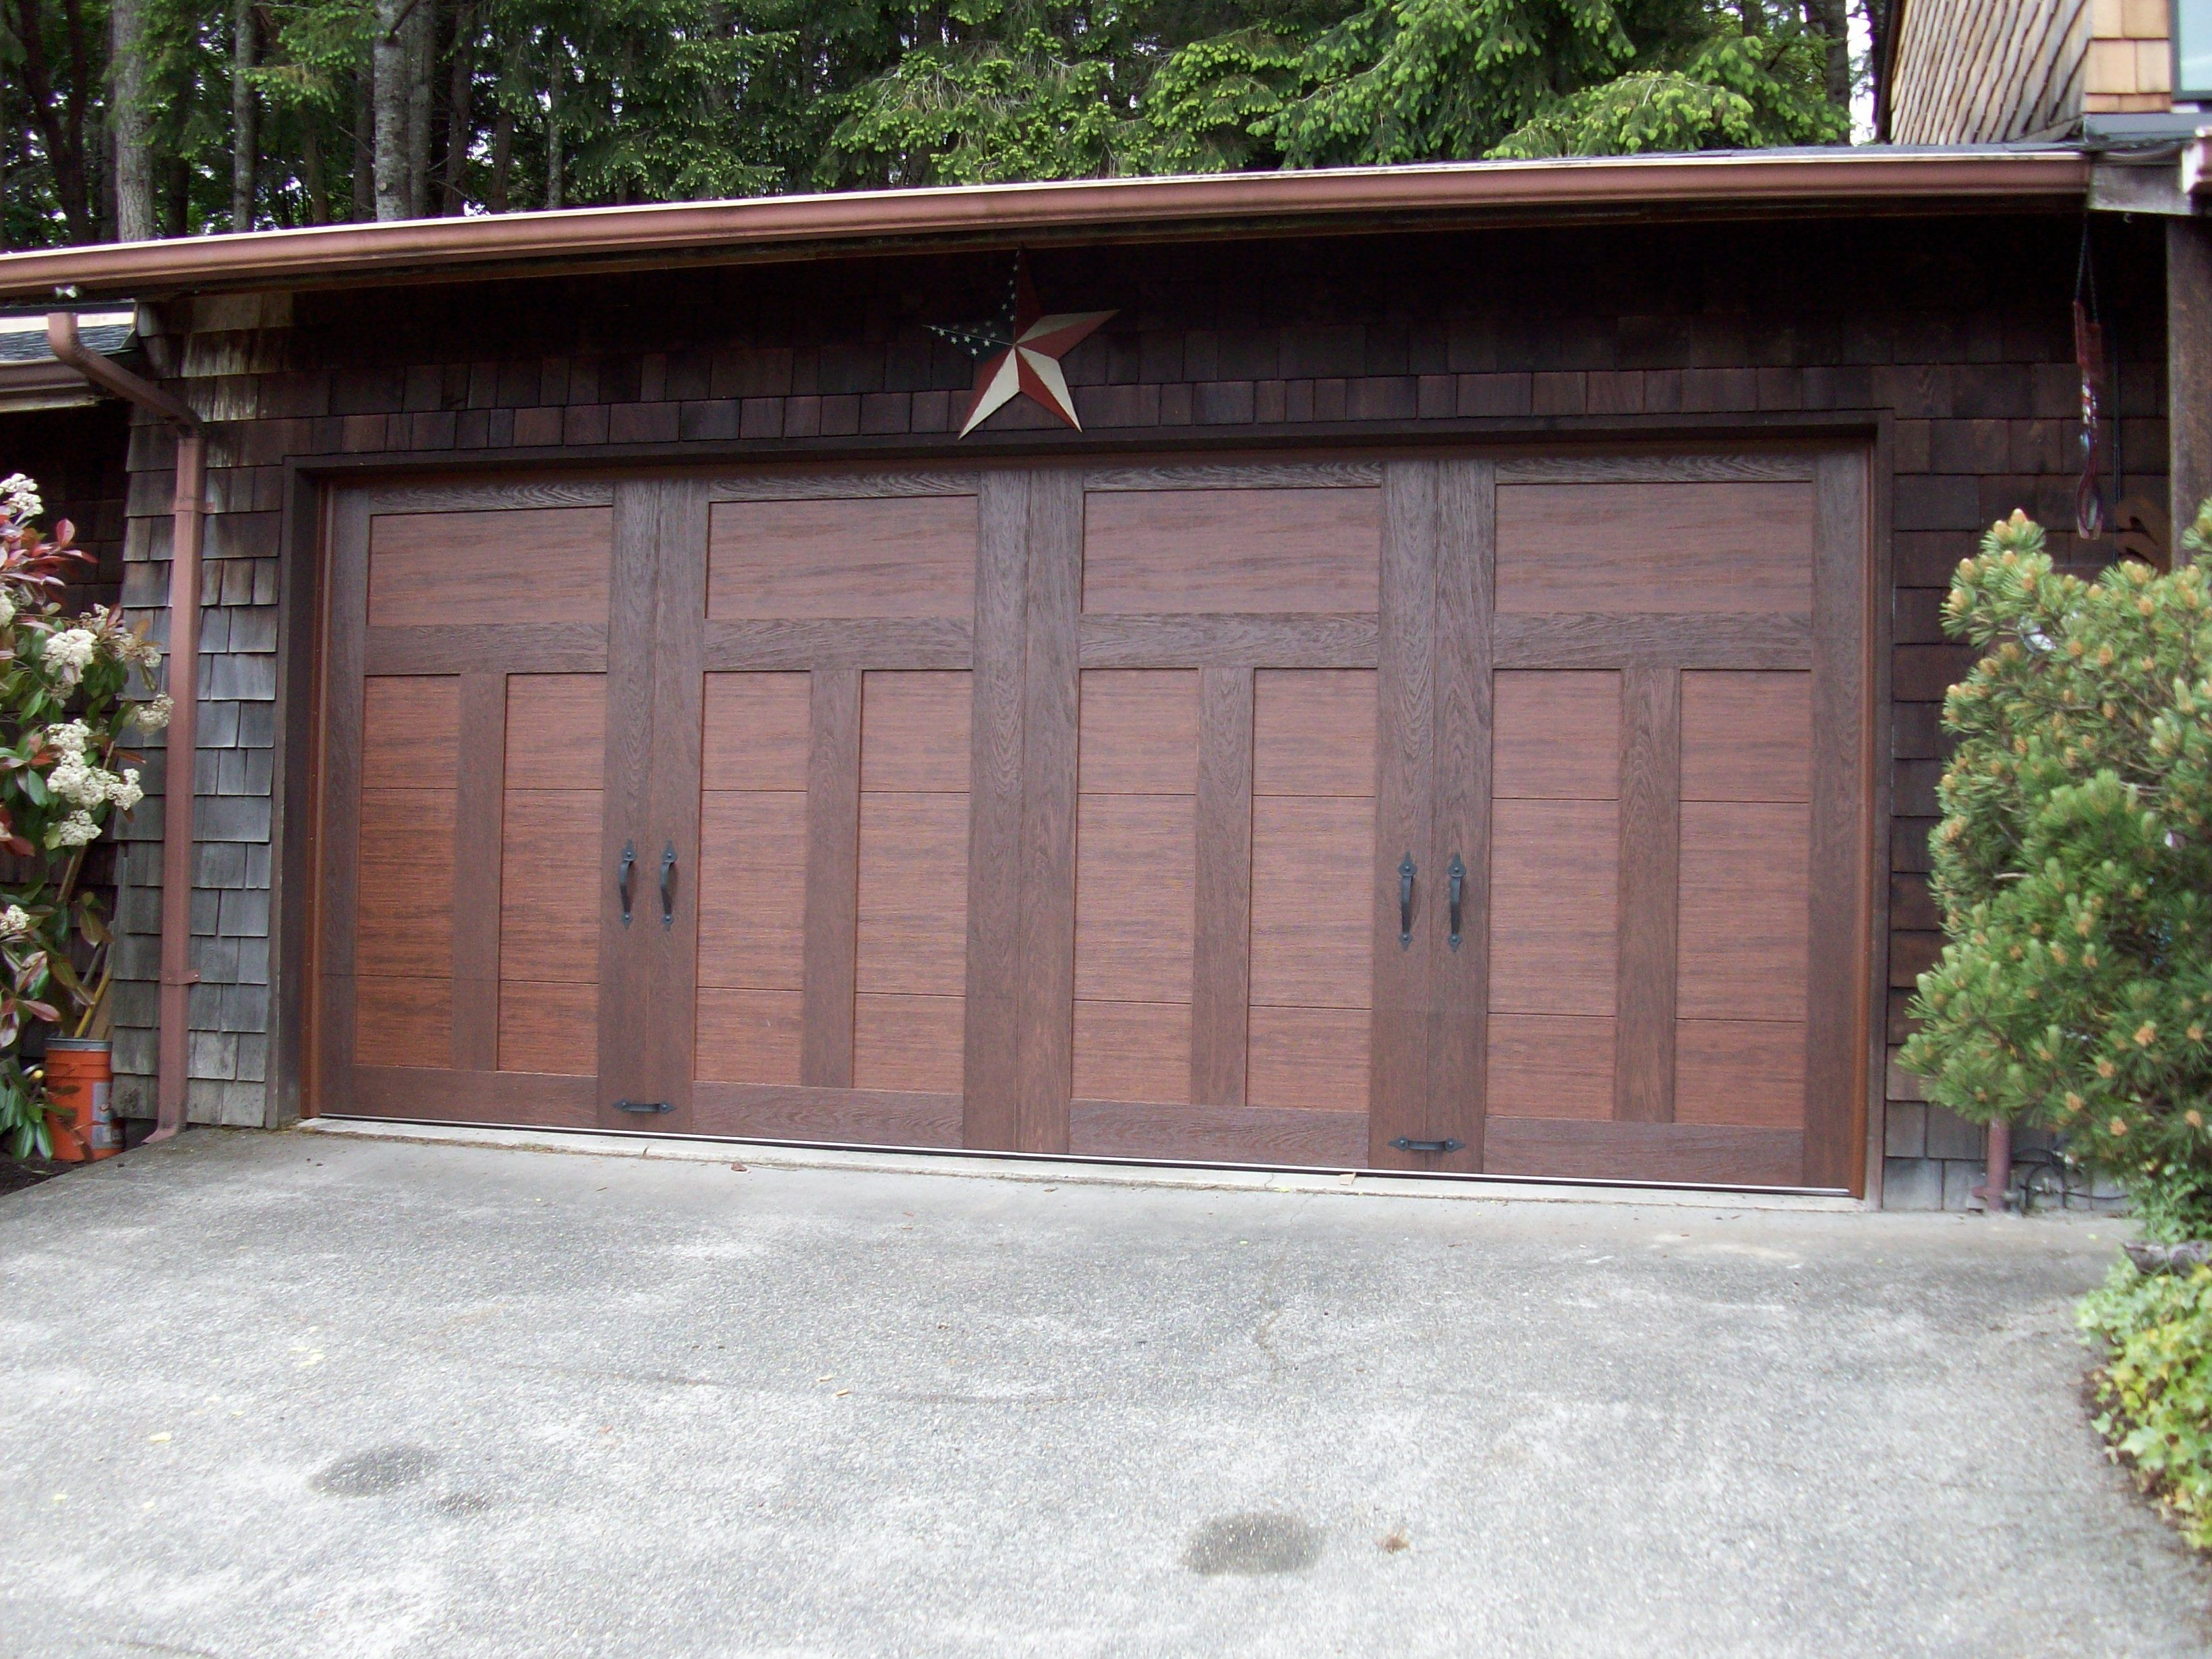 Clopay Canyon Ridge Door installed by Kitsap Garage Door in Bremerton WA. #Kitsapgaragedoor & Clopay Canyon Ridge Door installed by Kitsap Garage Door in ... pezcame.com